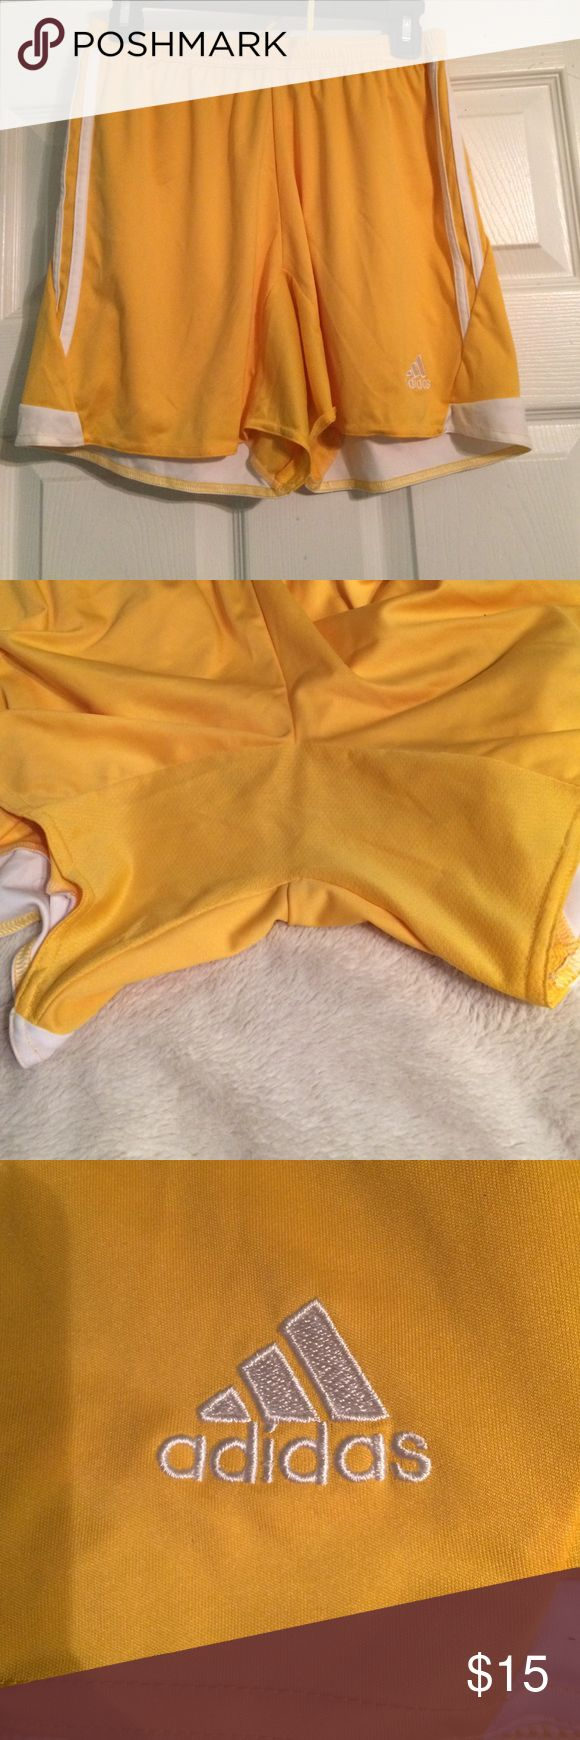 Yellow adidas soccer shorts Never worn before!! Brand new no tags bought online to go with a goalie jersey but the yellows didn't match Adidas Shorts